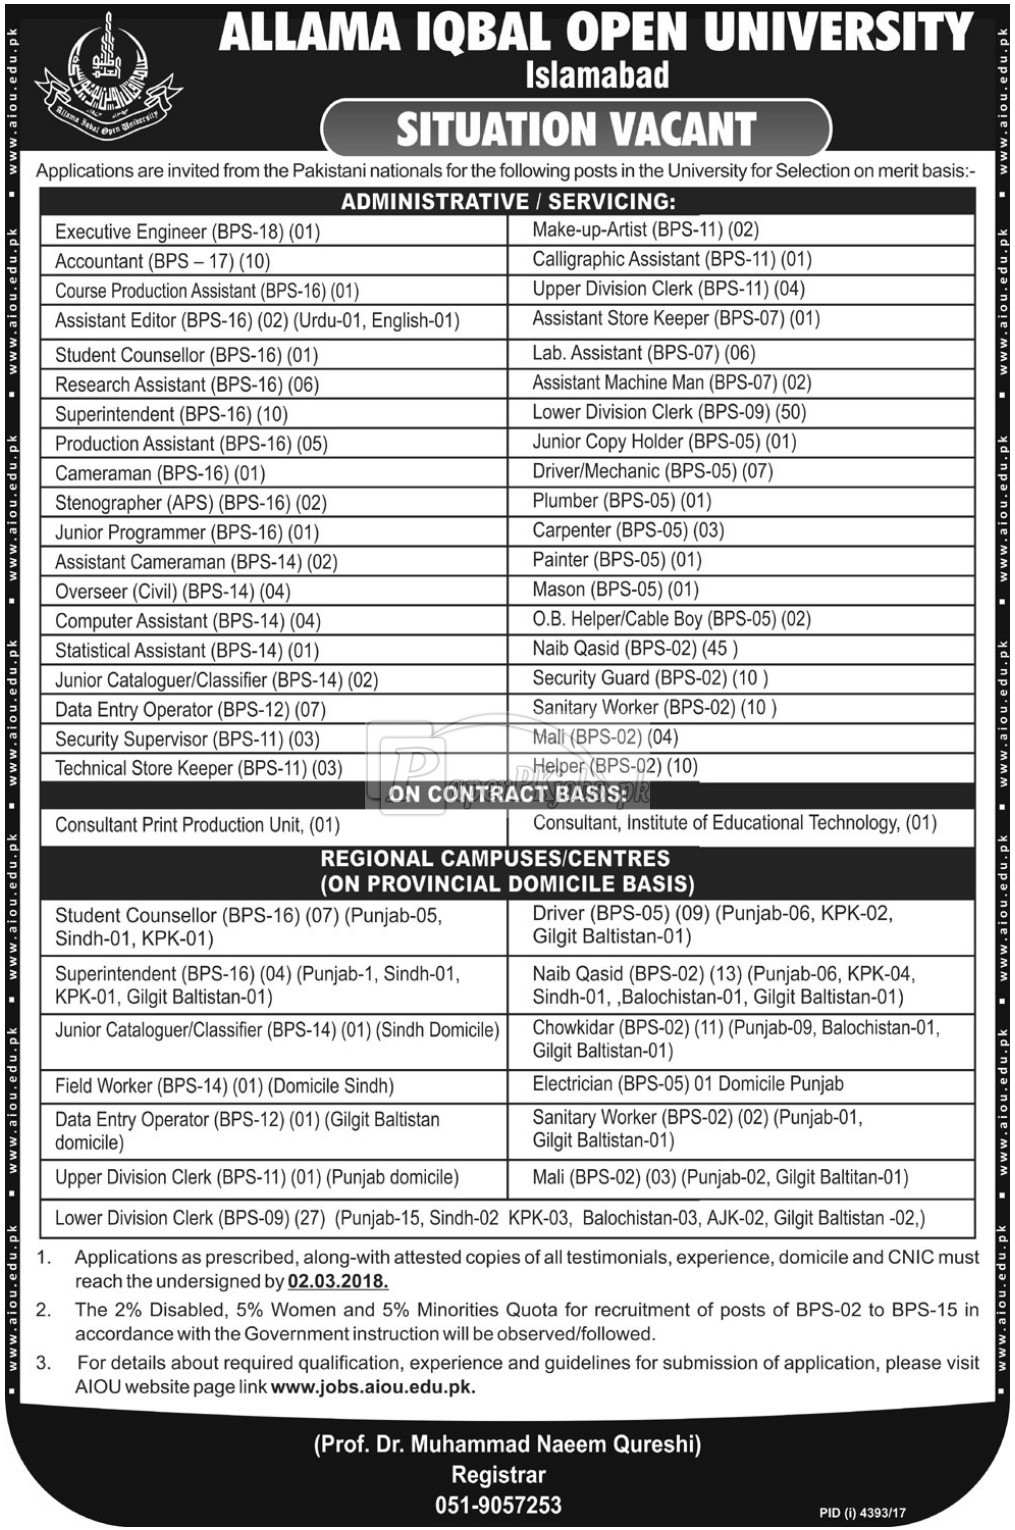 Allama Iqbal Open University AIOU Jobs 2018